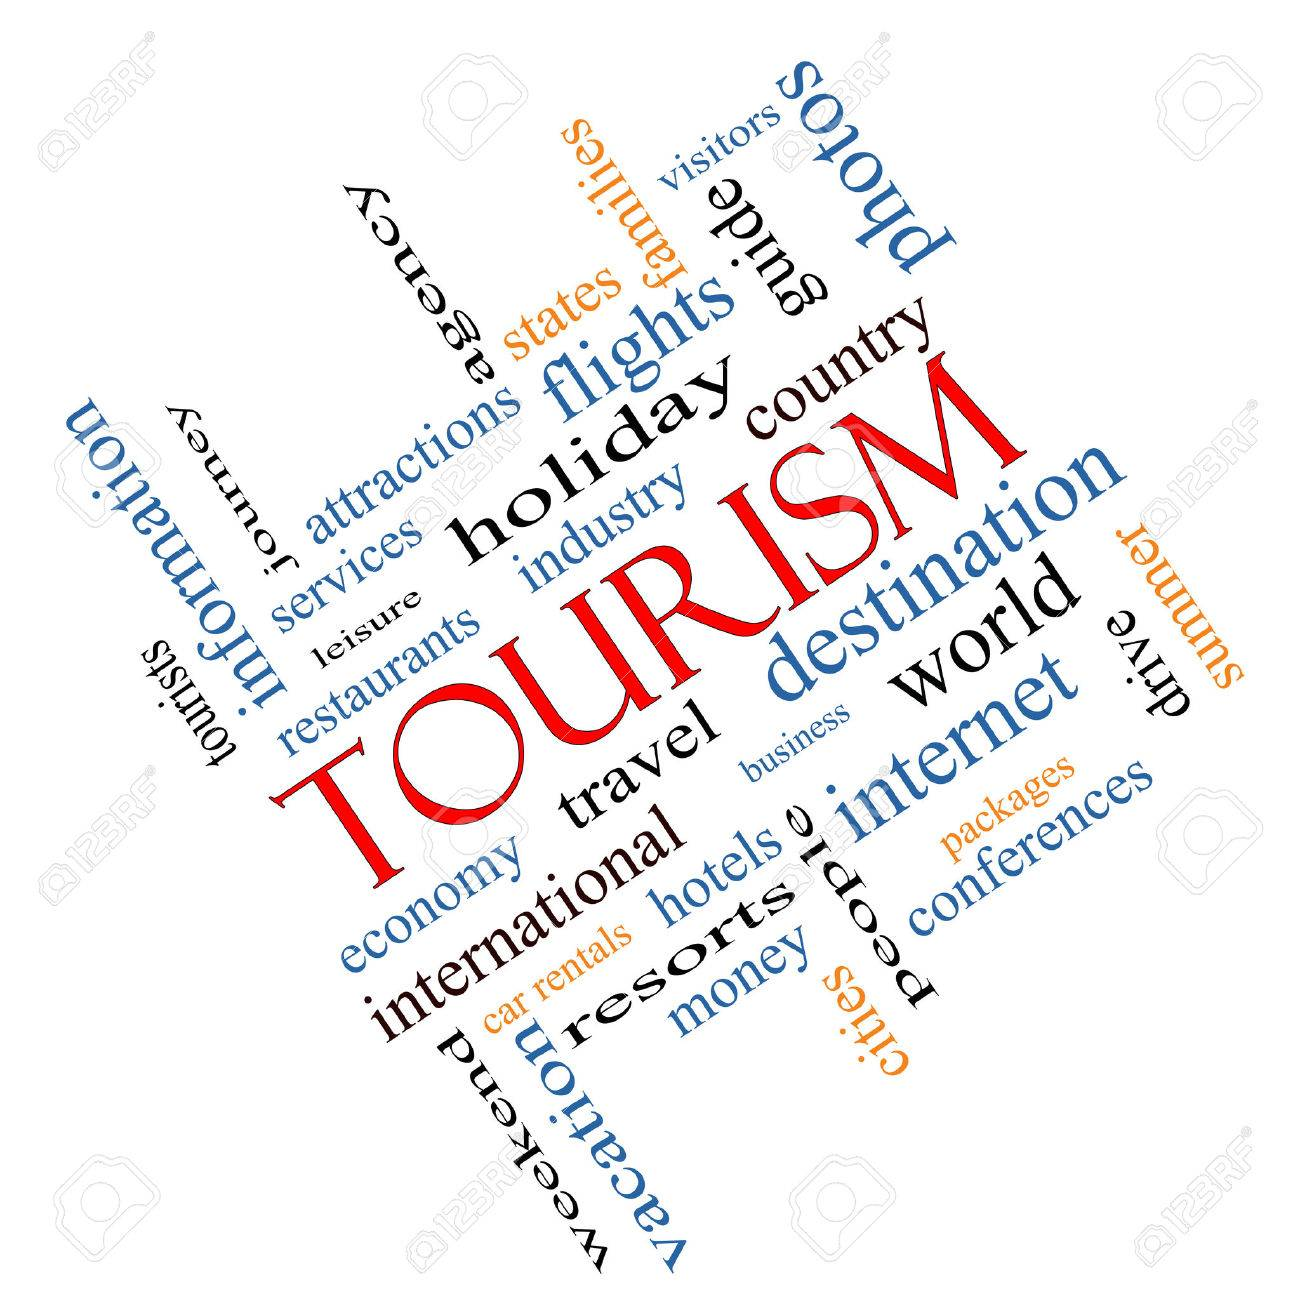 Tourism Word Cloud Concept angled with great terms such as travel, industry, world and more. Stock Photo - 27553833